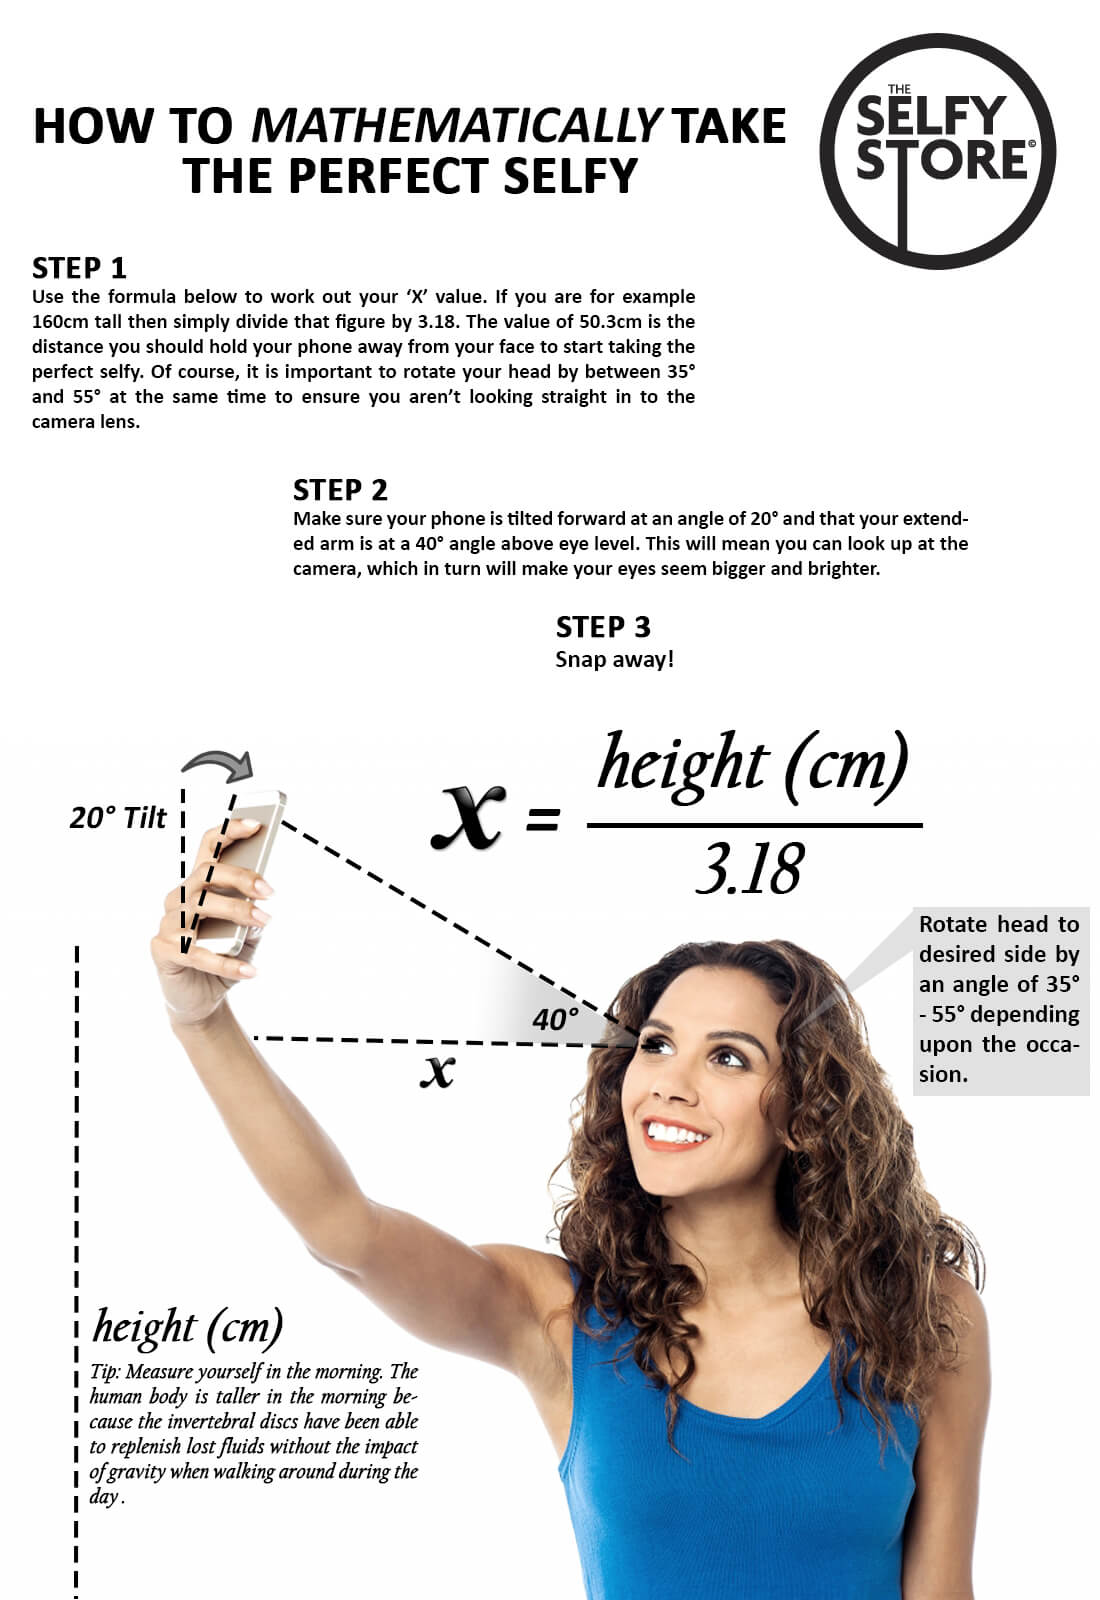 How to Mathematically Take the Perfect Selfie